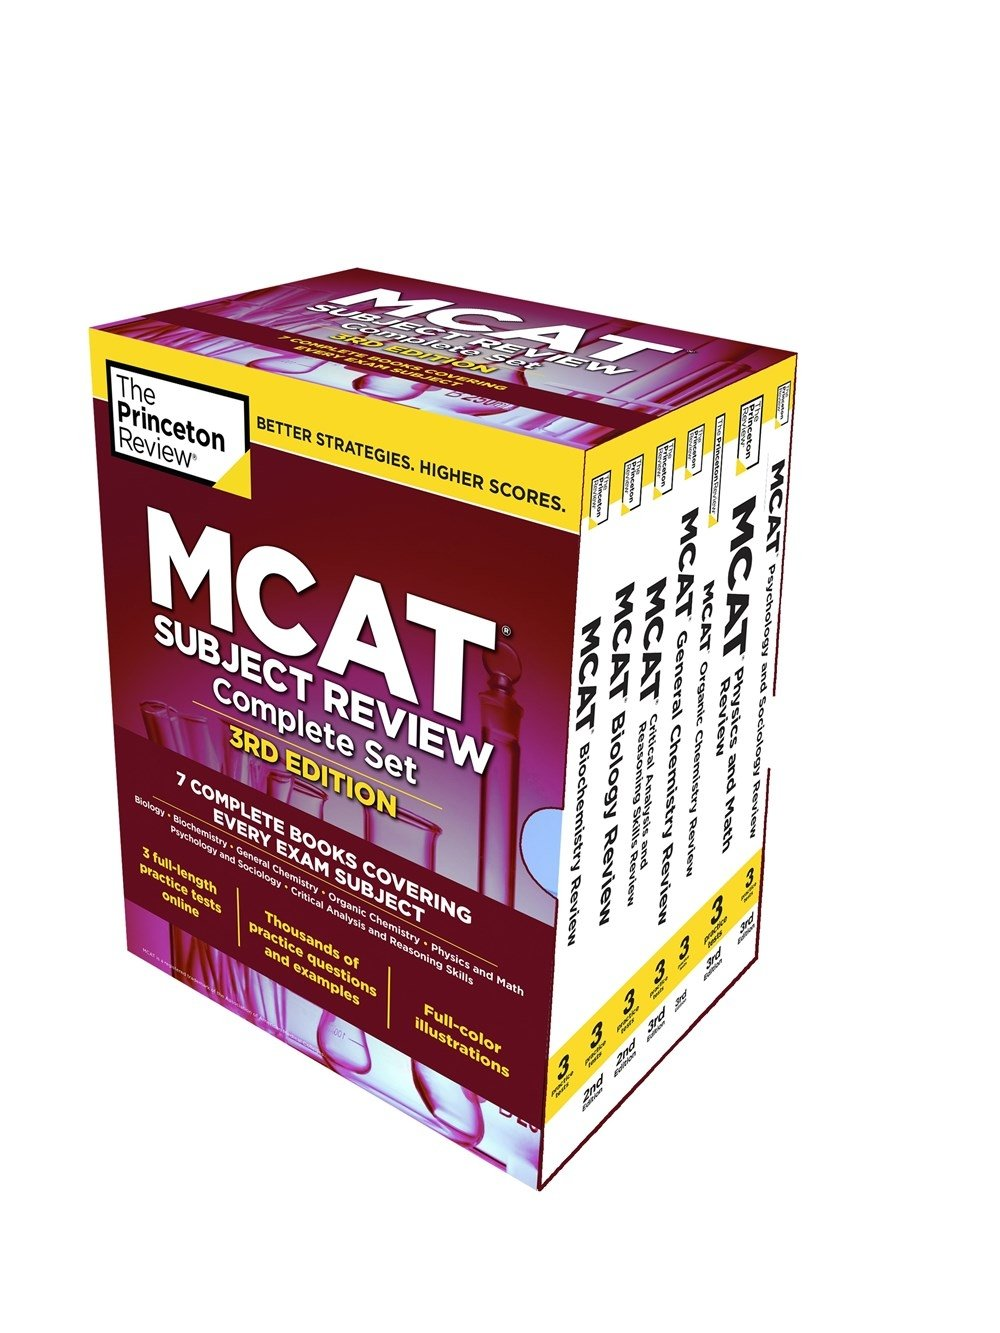 The Princeton Review MCAT Subject Review Complete Box Set, 3rd Edition: 7 Complete Books + 3 Online Practice Tests (Graduate School Test Preparation) by Princeton Review